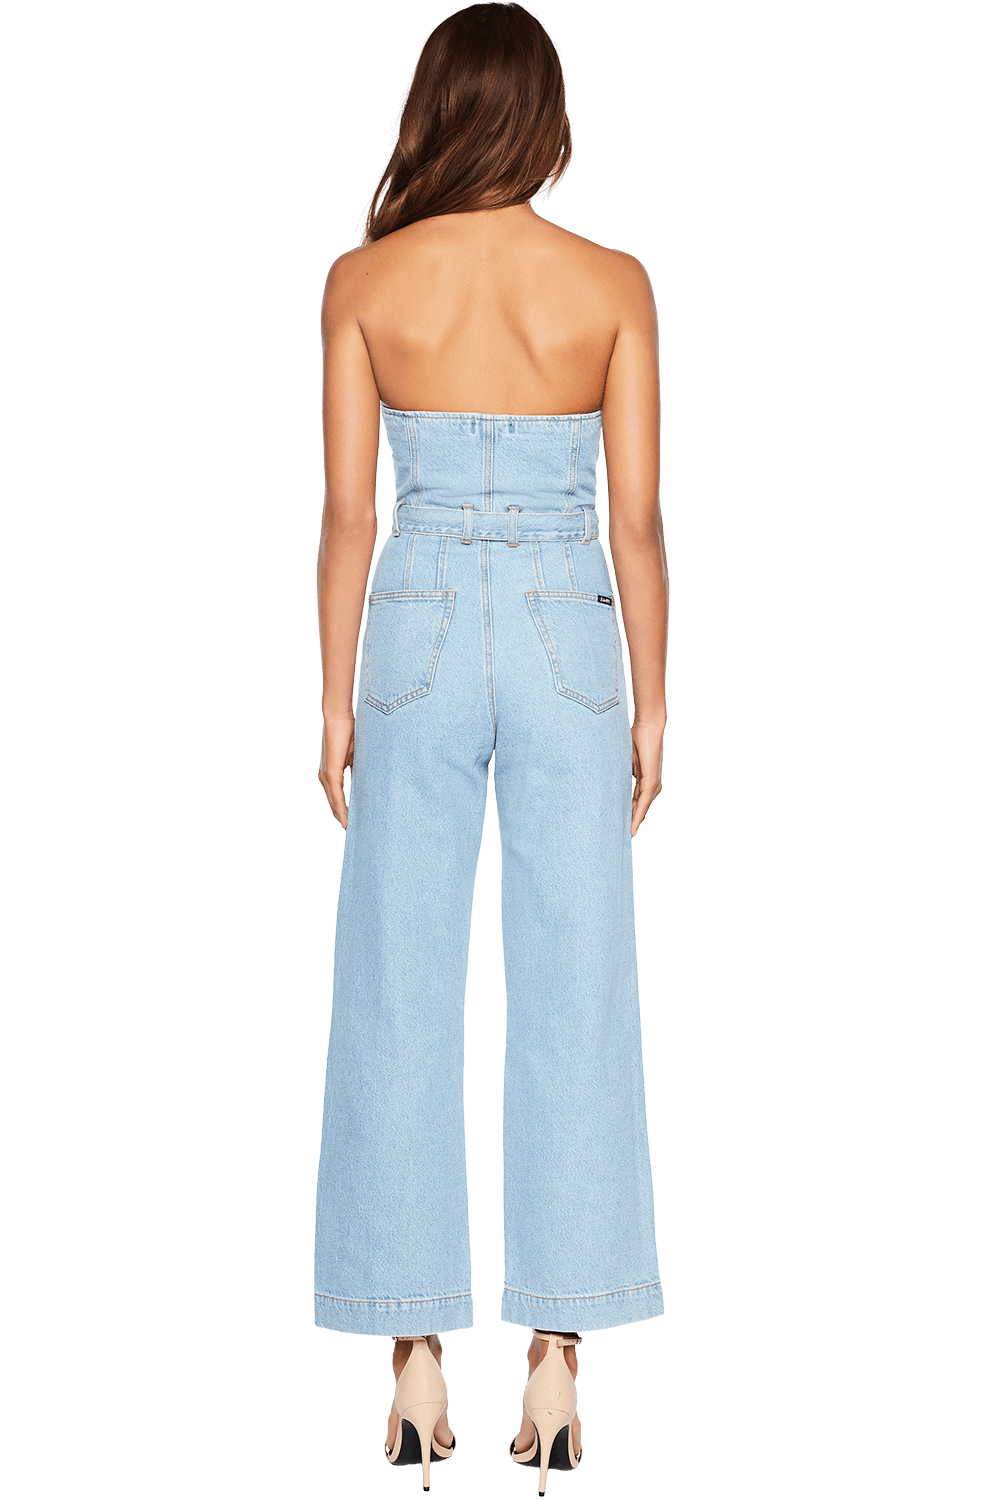 WIDE LEG DENIM ROMPER in colour CITADEL